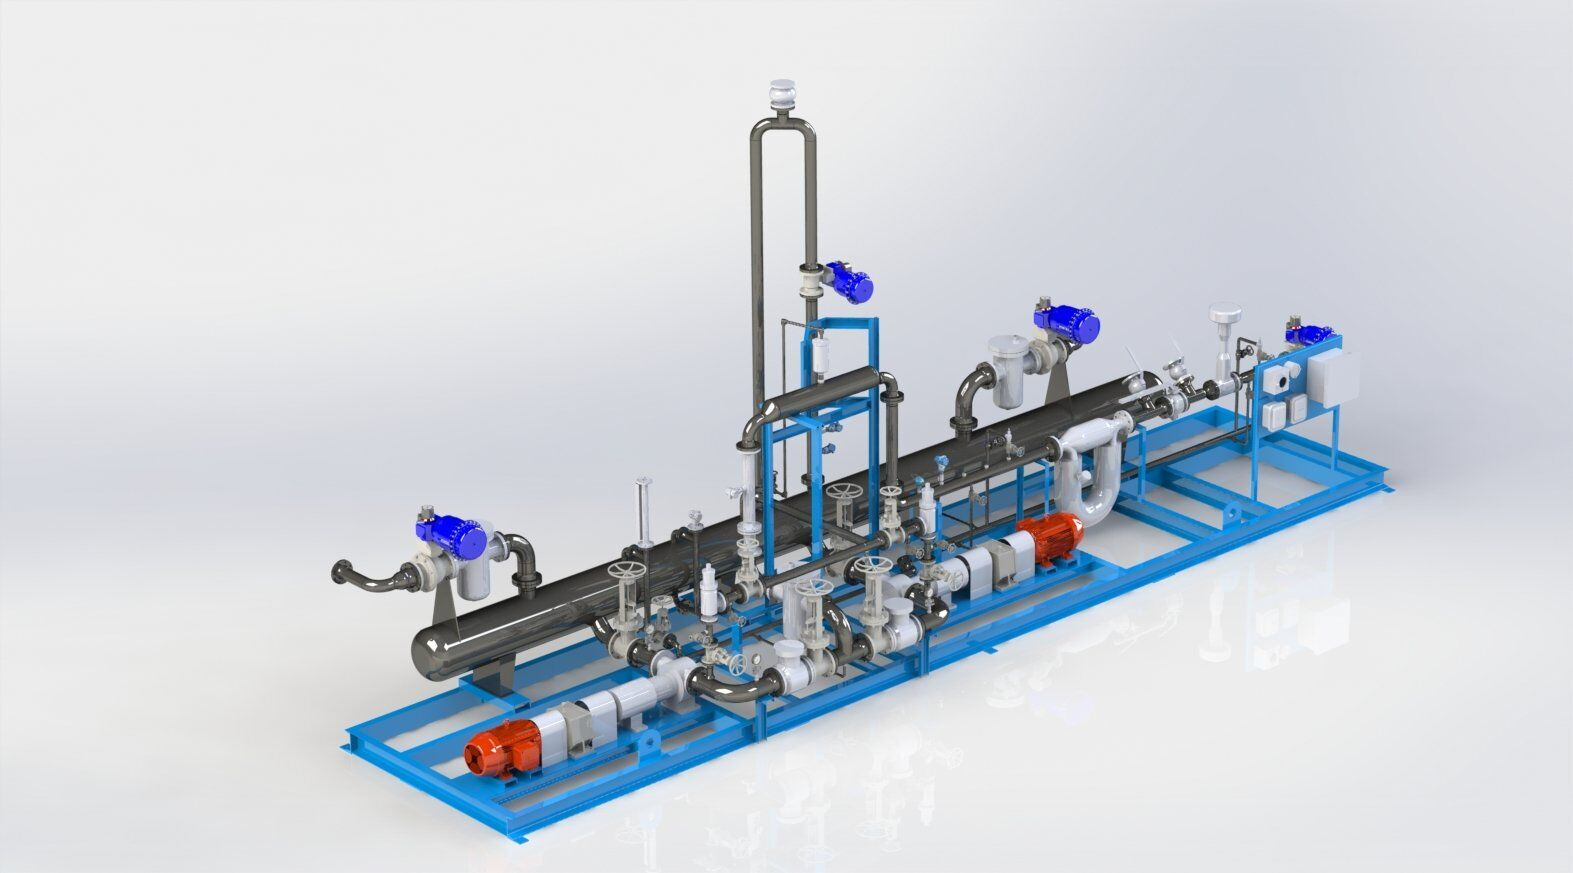 Lease Automatic Custody Transfer Skid Systems LACT Units